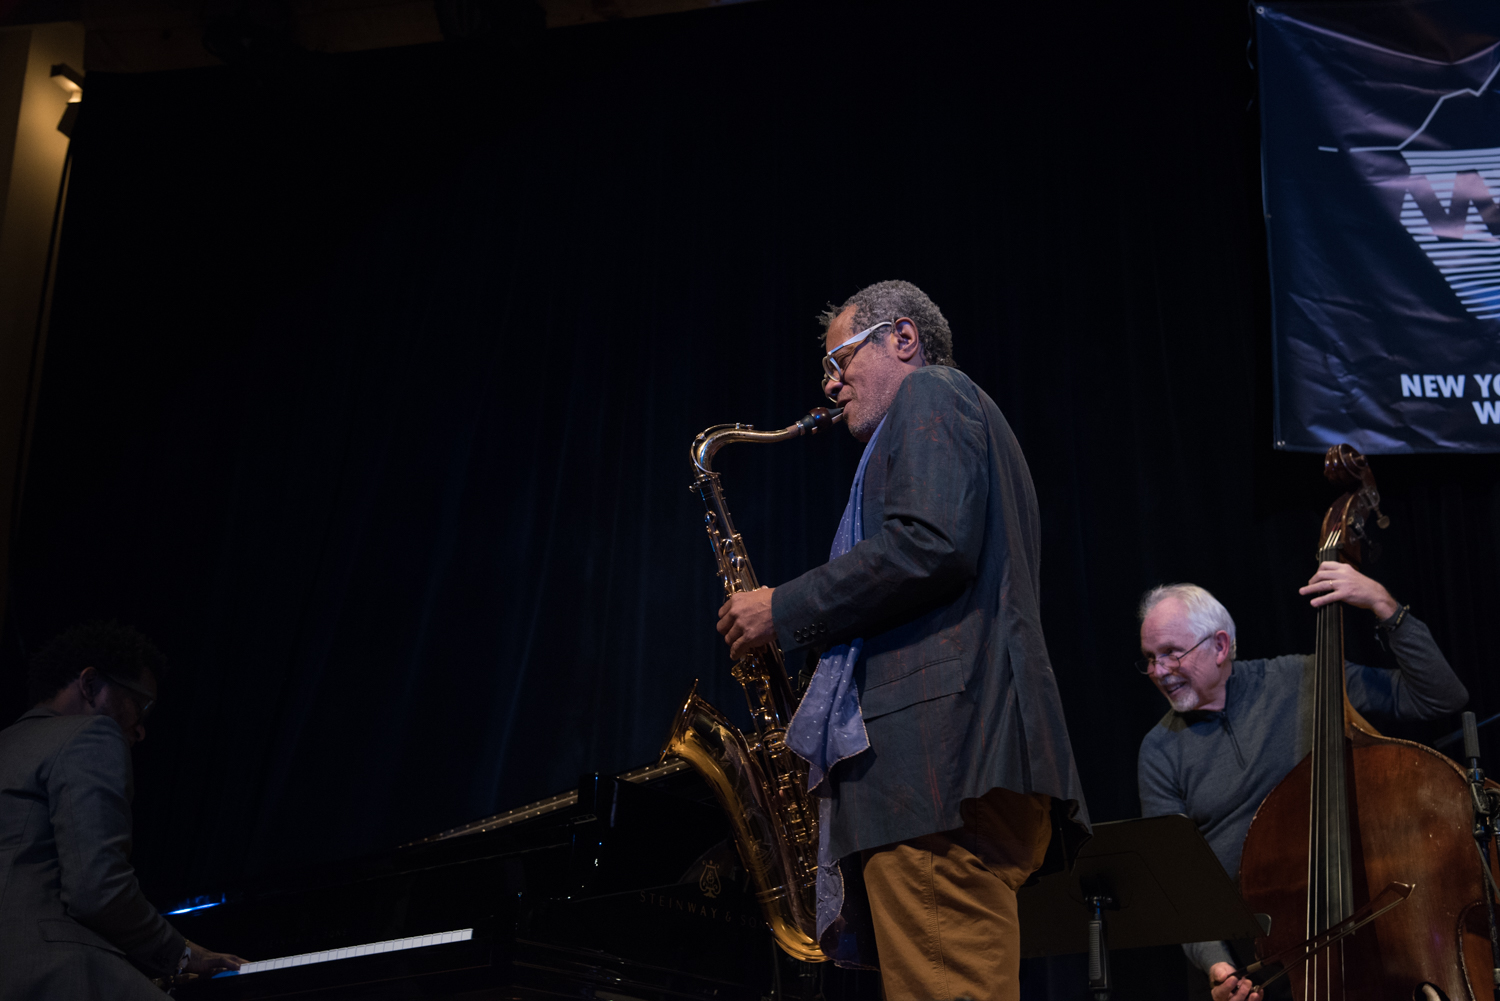 Aruan Ortiz (piano), Don Byron (saxophone) and Cameron Brown (bass) performing at New School Auditorium - 12th Street, January 16.